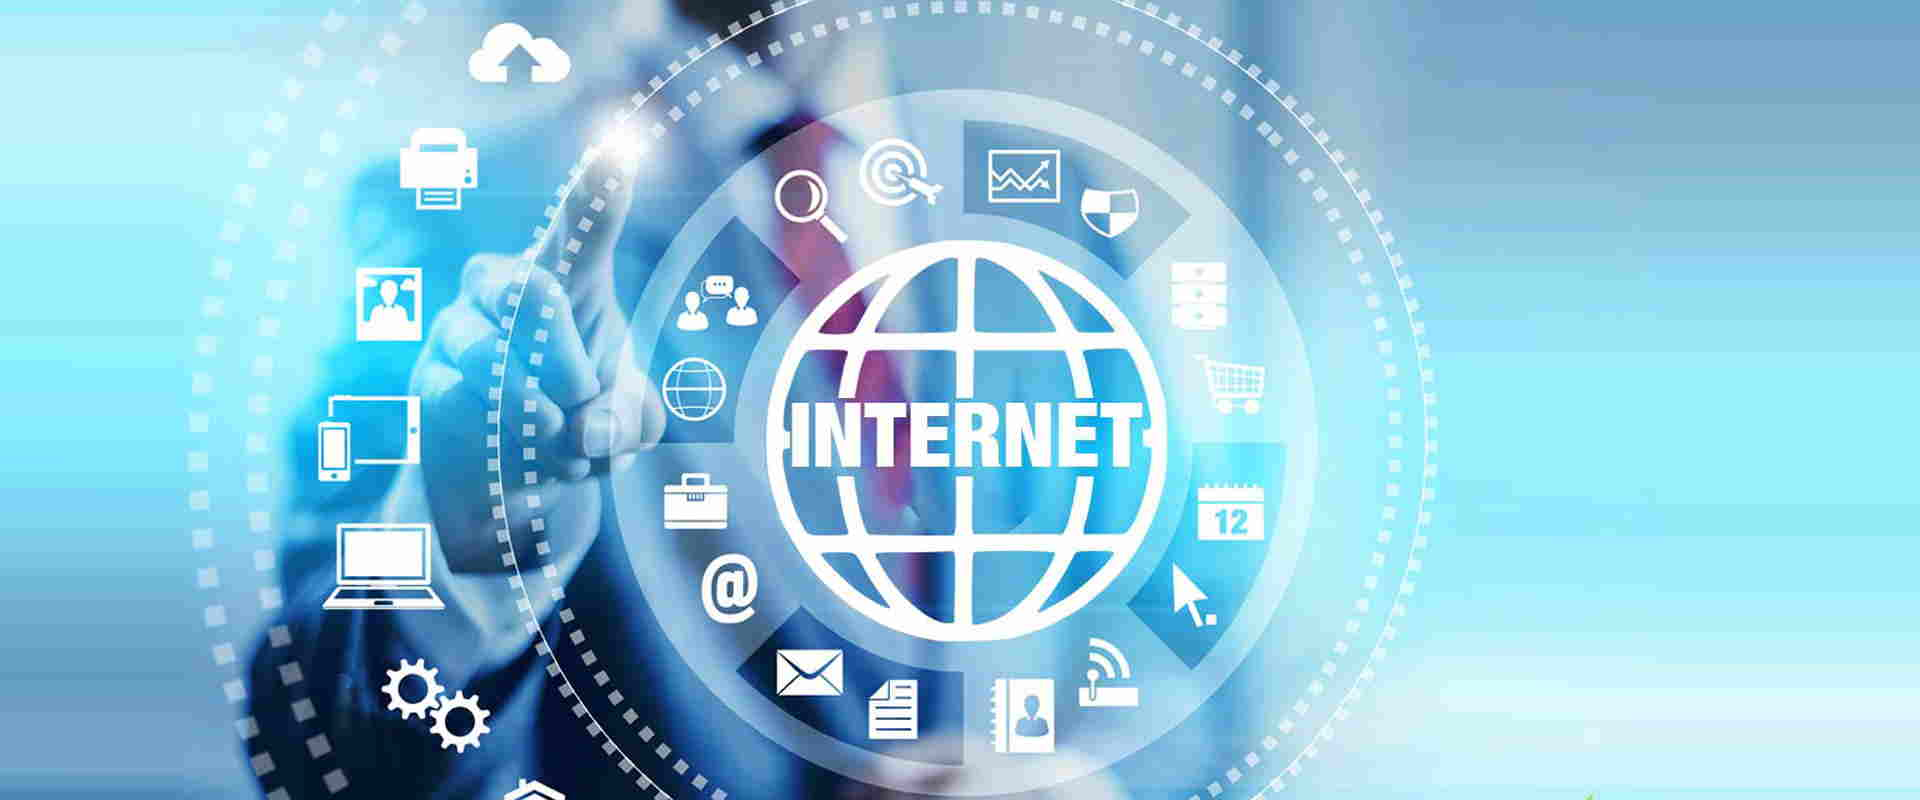 You Can Buy Lifetime Internet Access For Just $5 On The Dark Web